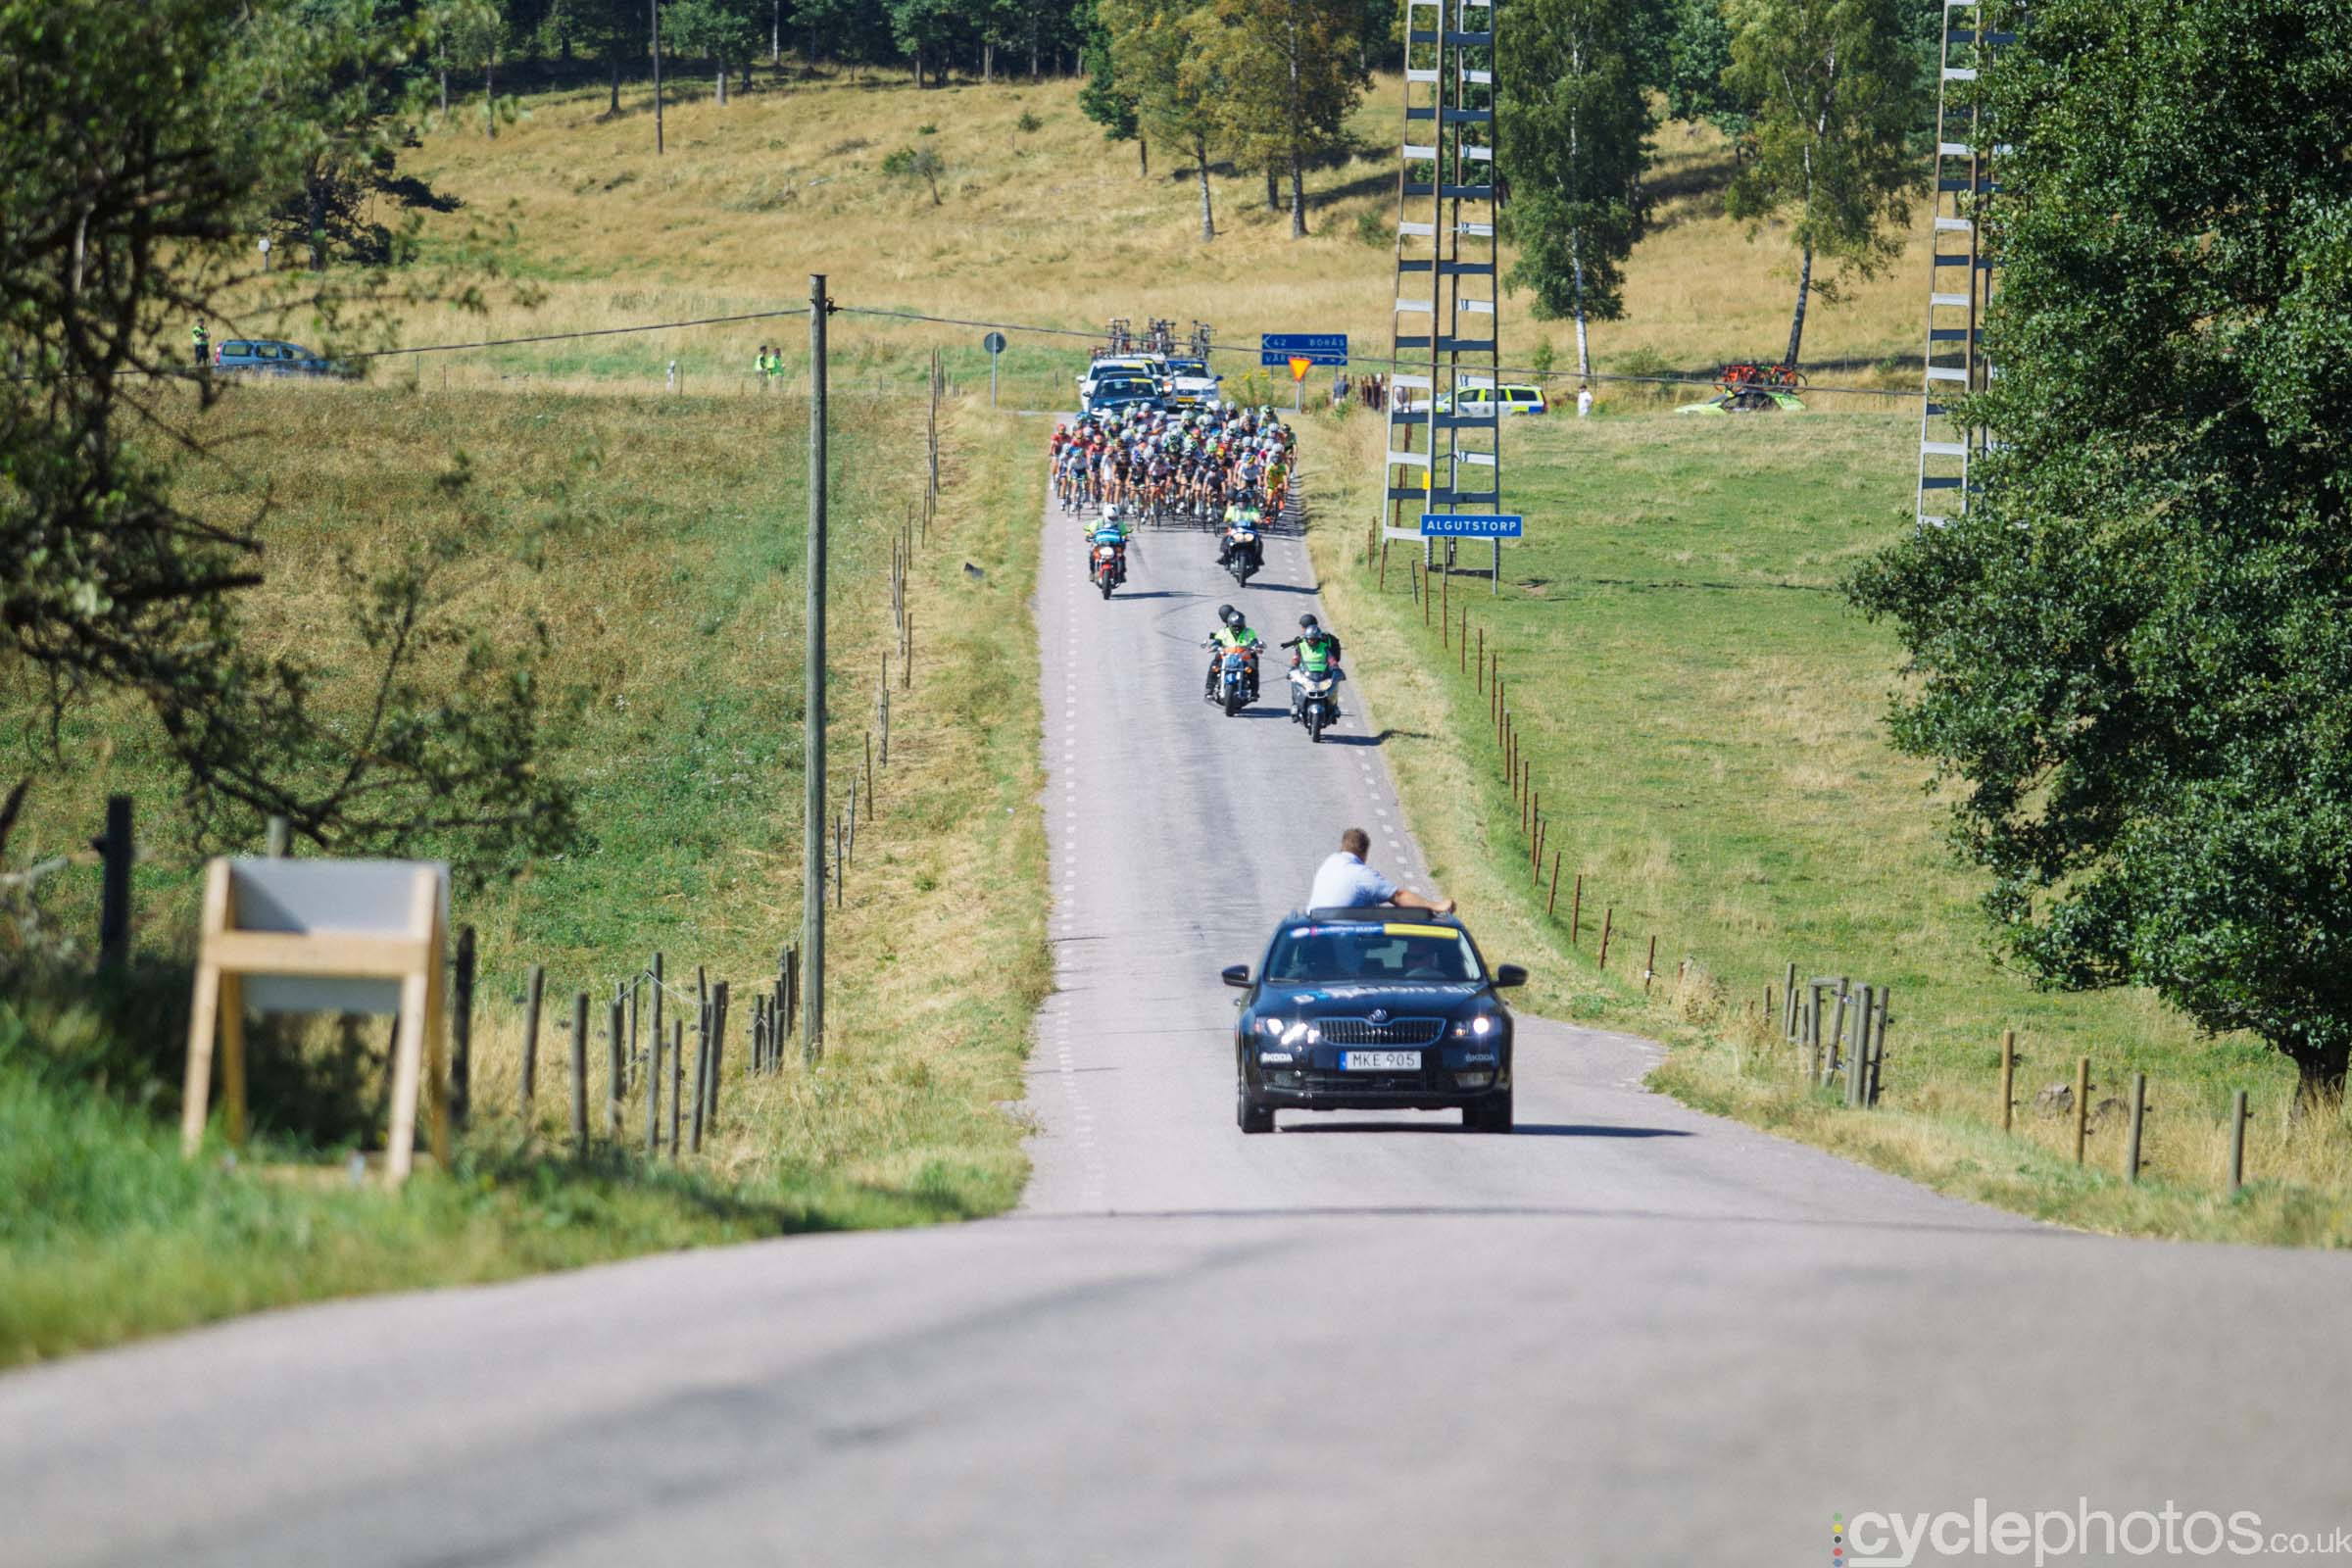 The peloton starts the climb for the fifth time during the 2015 edition of the Vargarda women's World Cup race